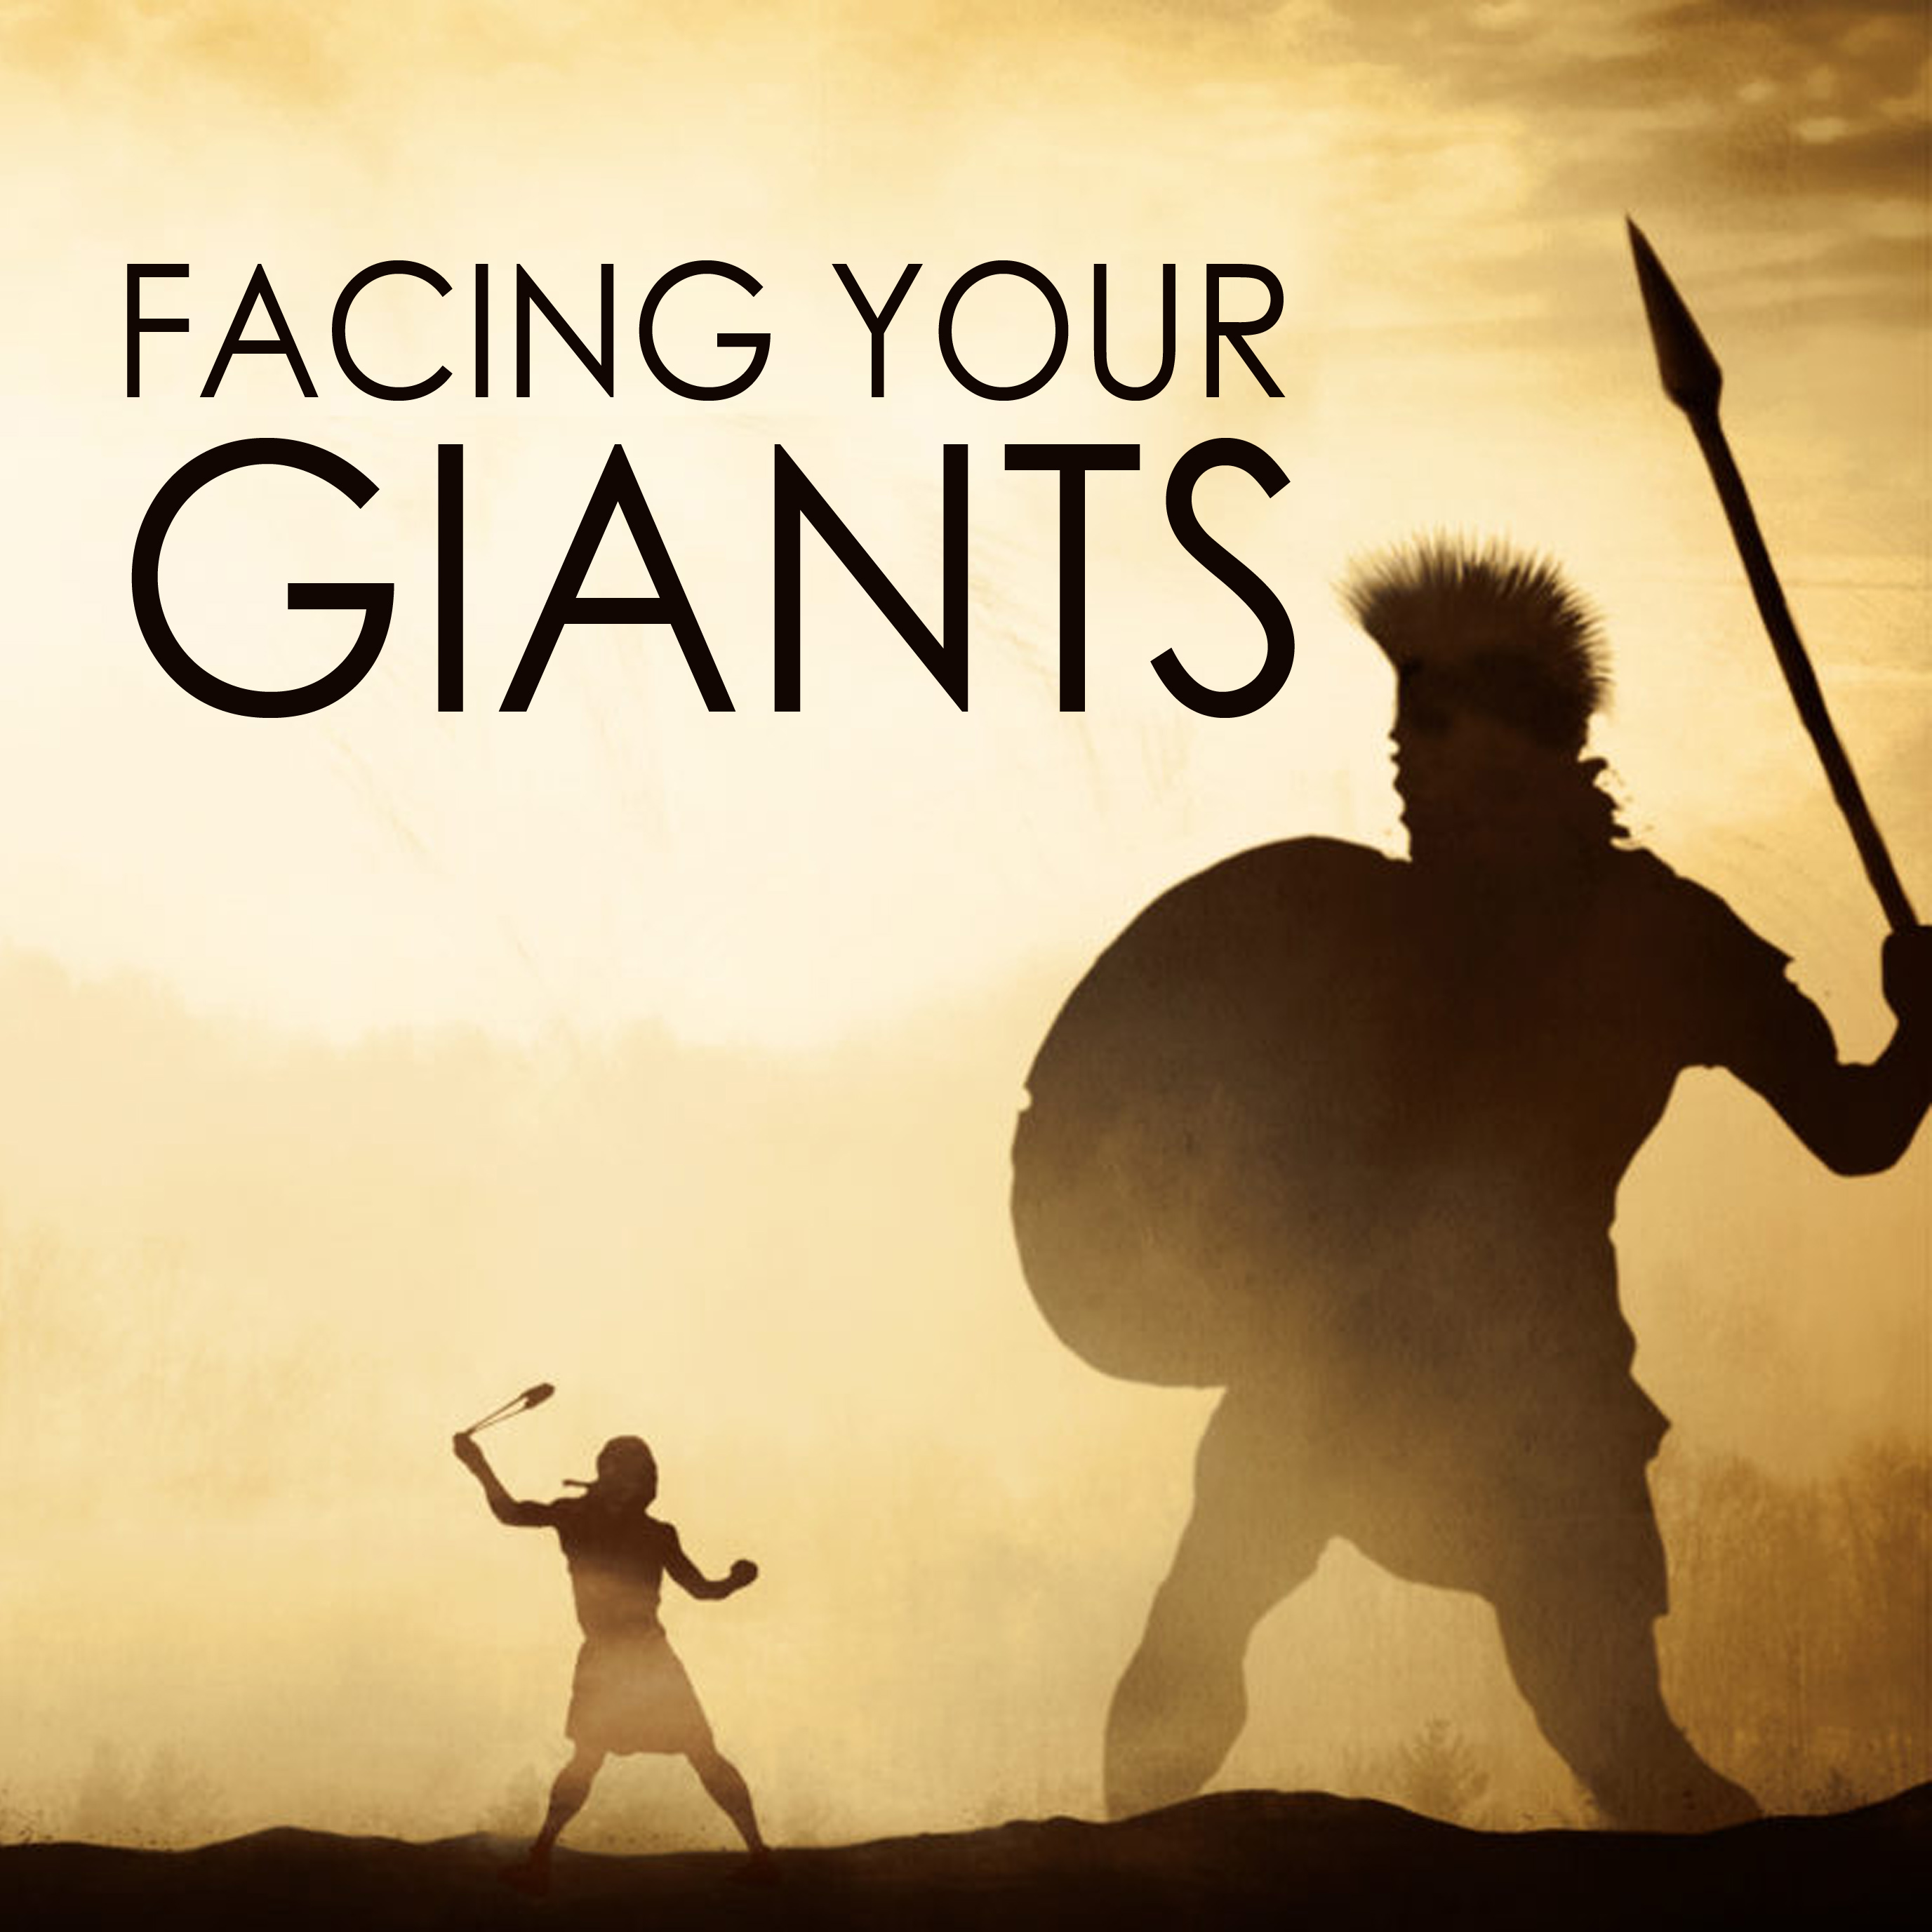 facing giants web